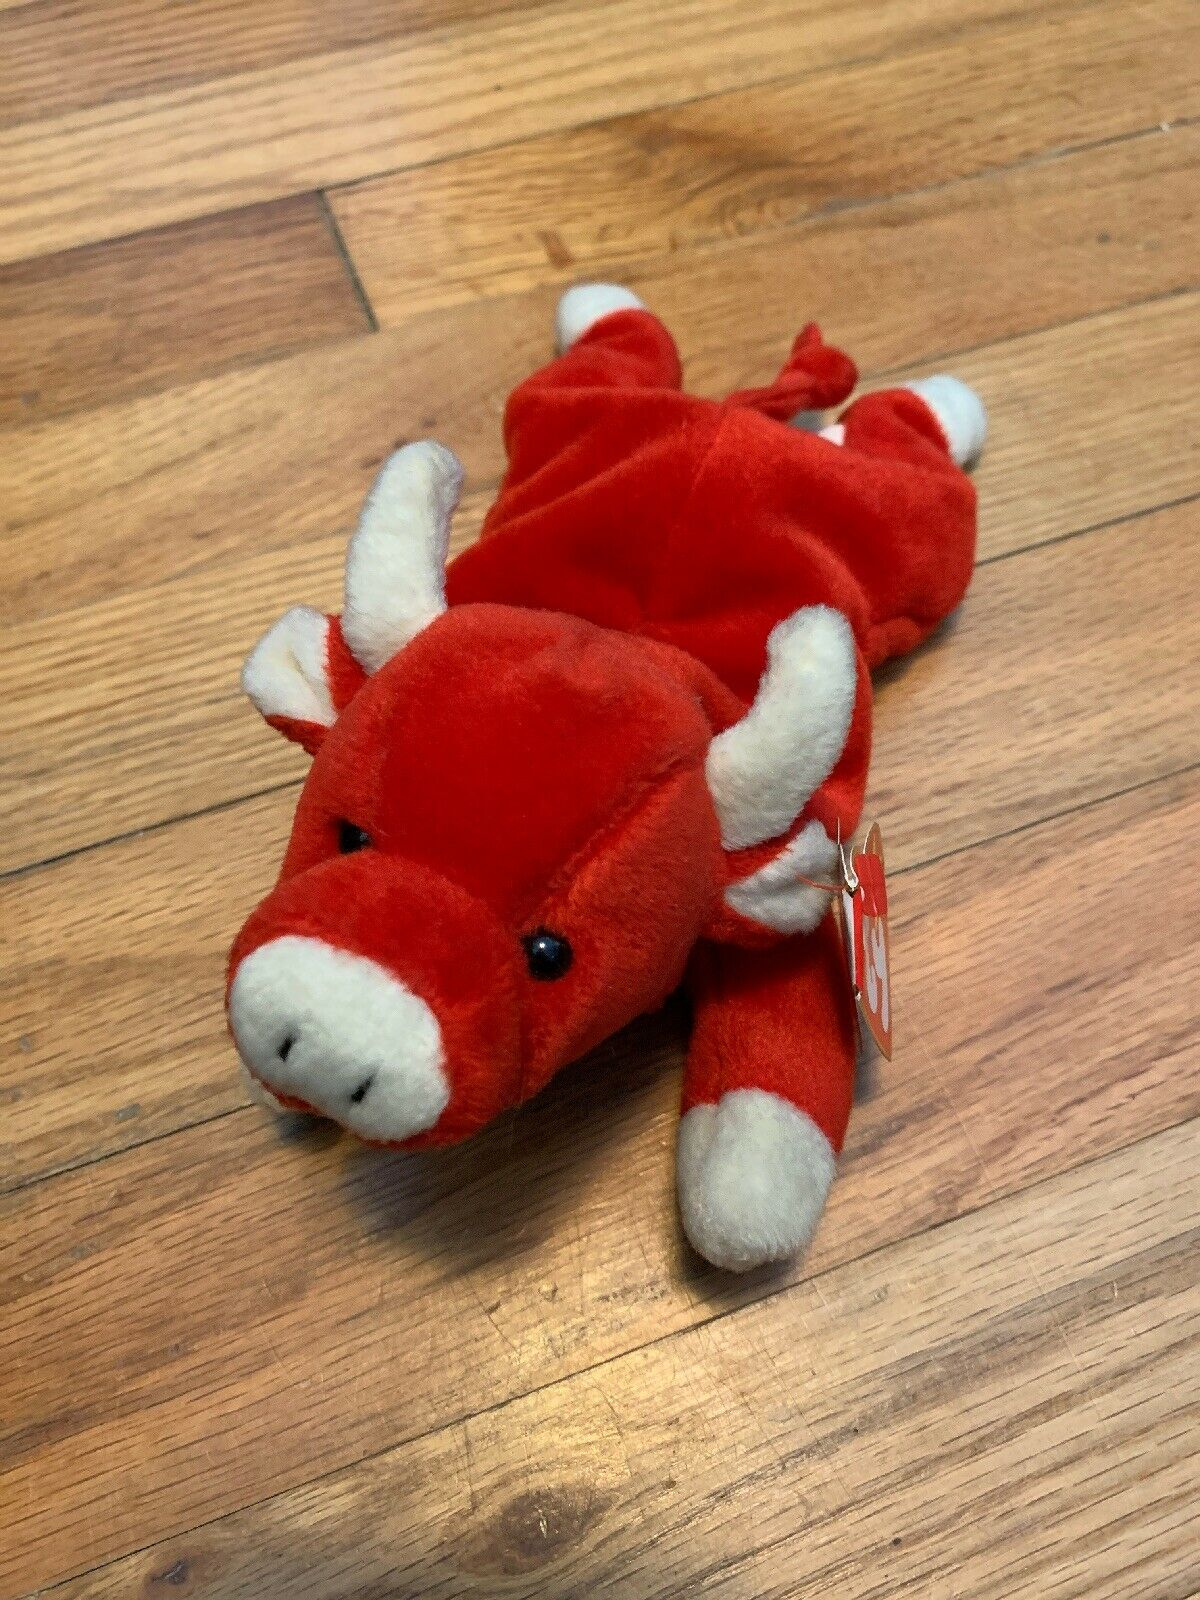 TY Beanie Babies  SNORT  Red Bull - MWMTs  RETIRED  A MUST HAVE  GREAT GIFT